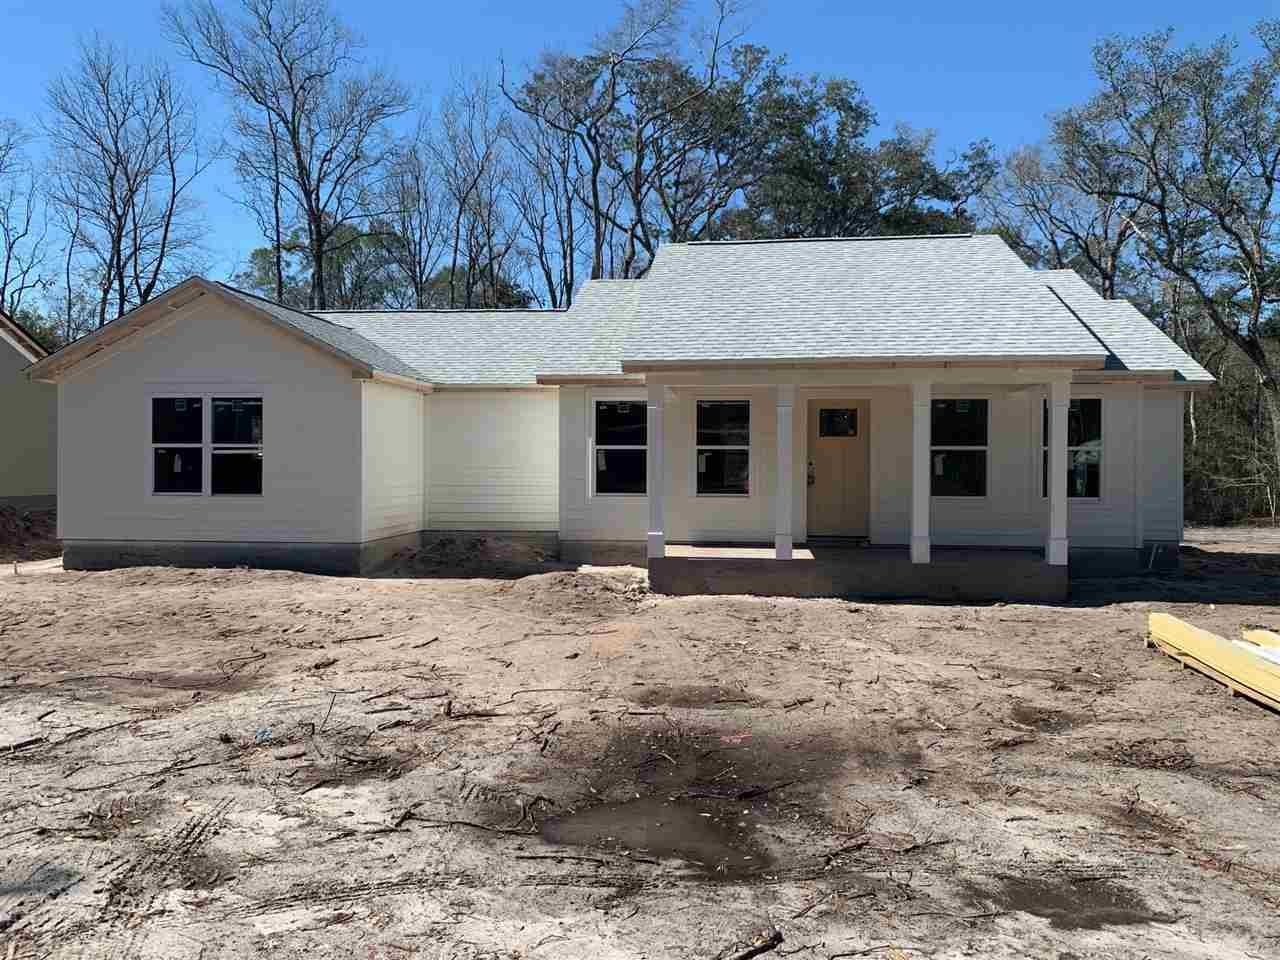 Lot 9 Lee Street, Crawfordville, FL 32327 - MLS#: 325553